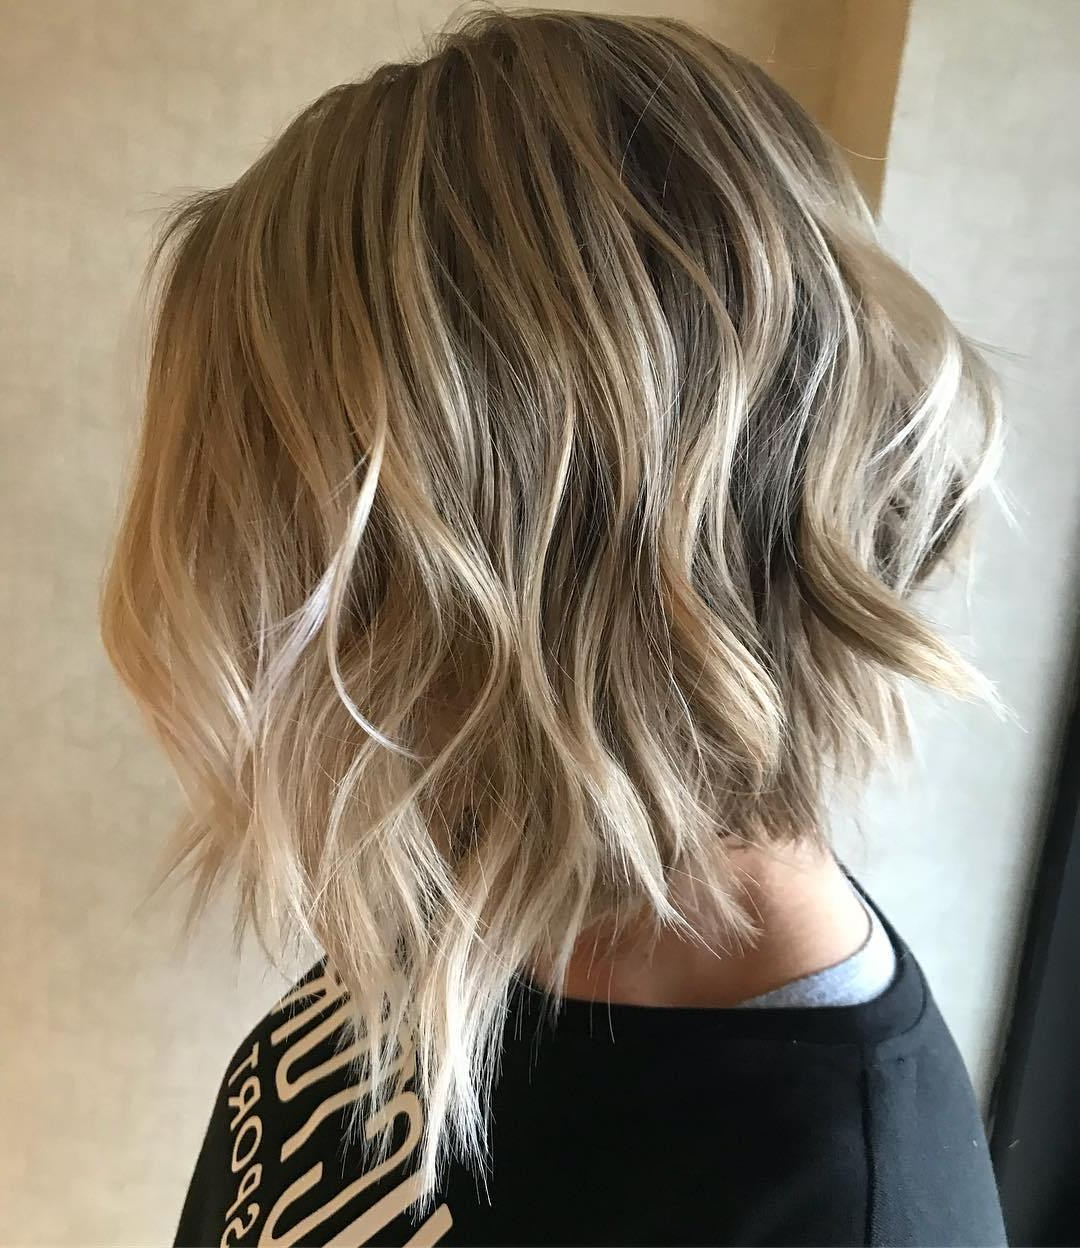 50 Inverted Bob Haircuts That Are Uber Fashionable – Hair With Choppy Blonde Bob Hairstyles With Messy Waves (View 10 of 20)